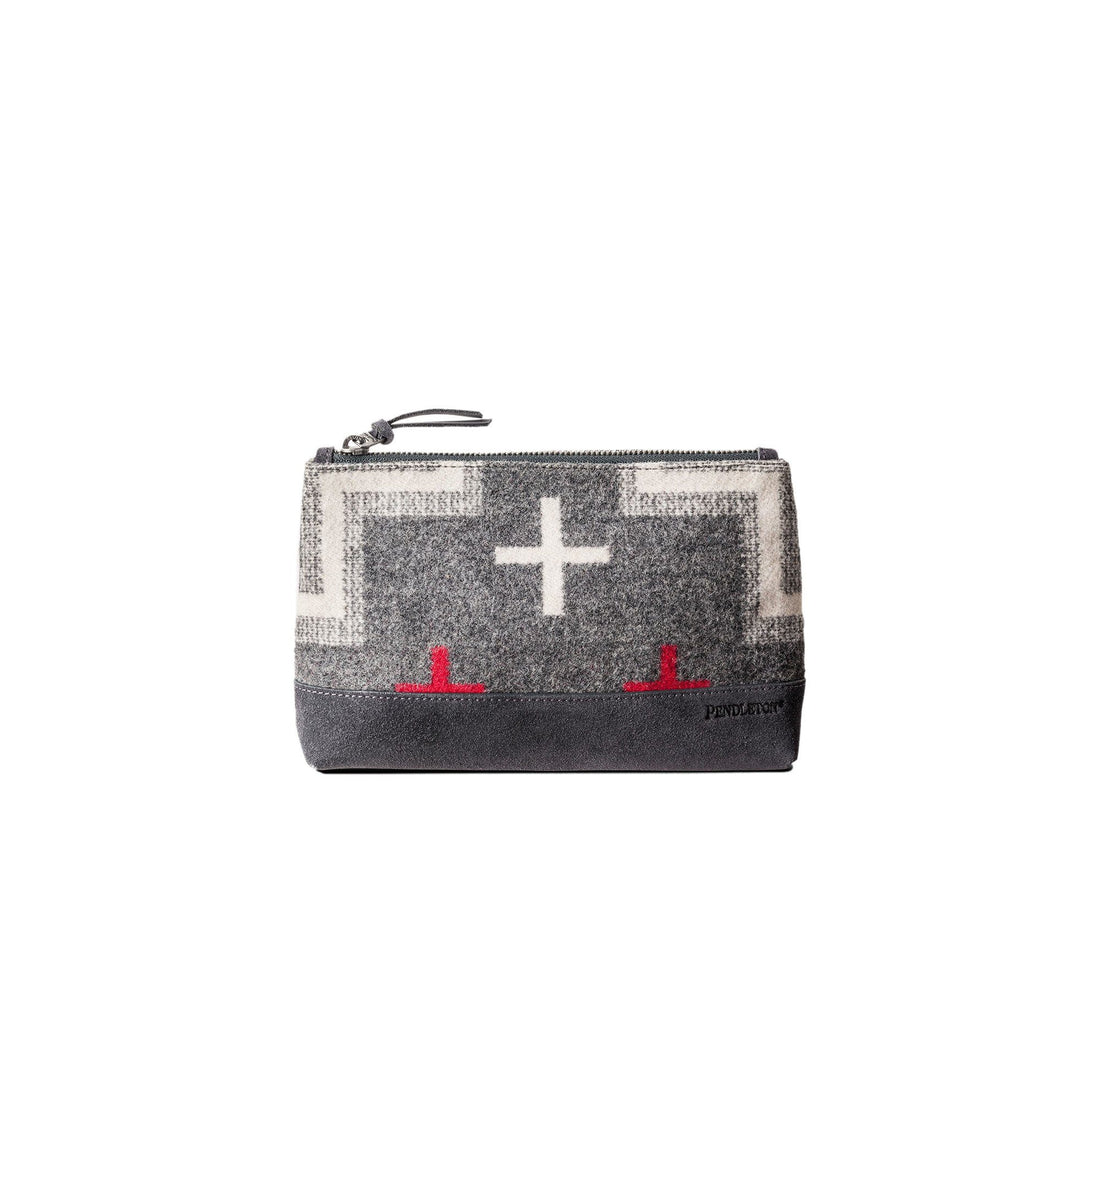 Pendleton Zip Pouch - San Miguel - Carry Essentials - Iron and Resin